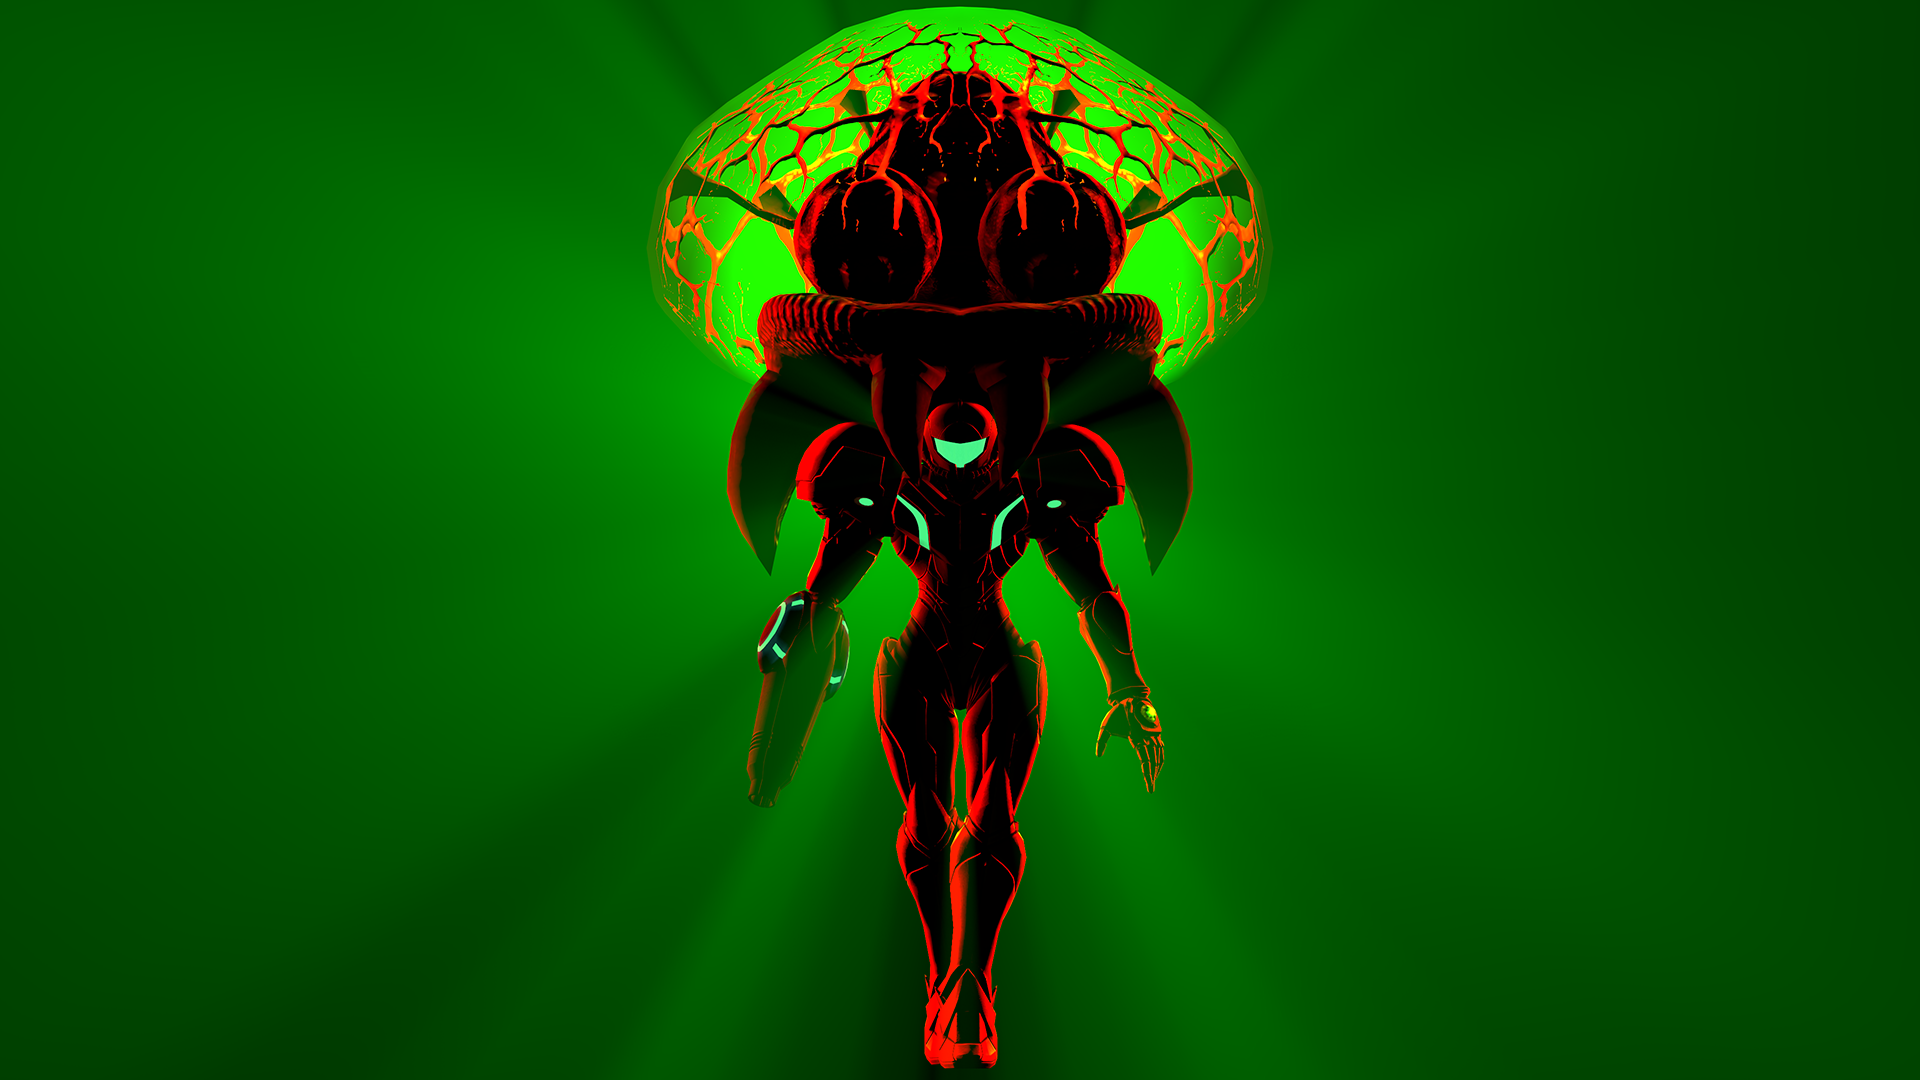 Samus And Metroid Green Wallpaper By GeniusGT